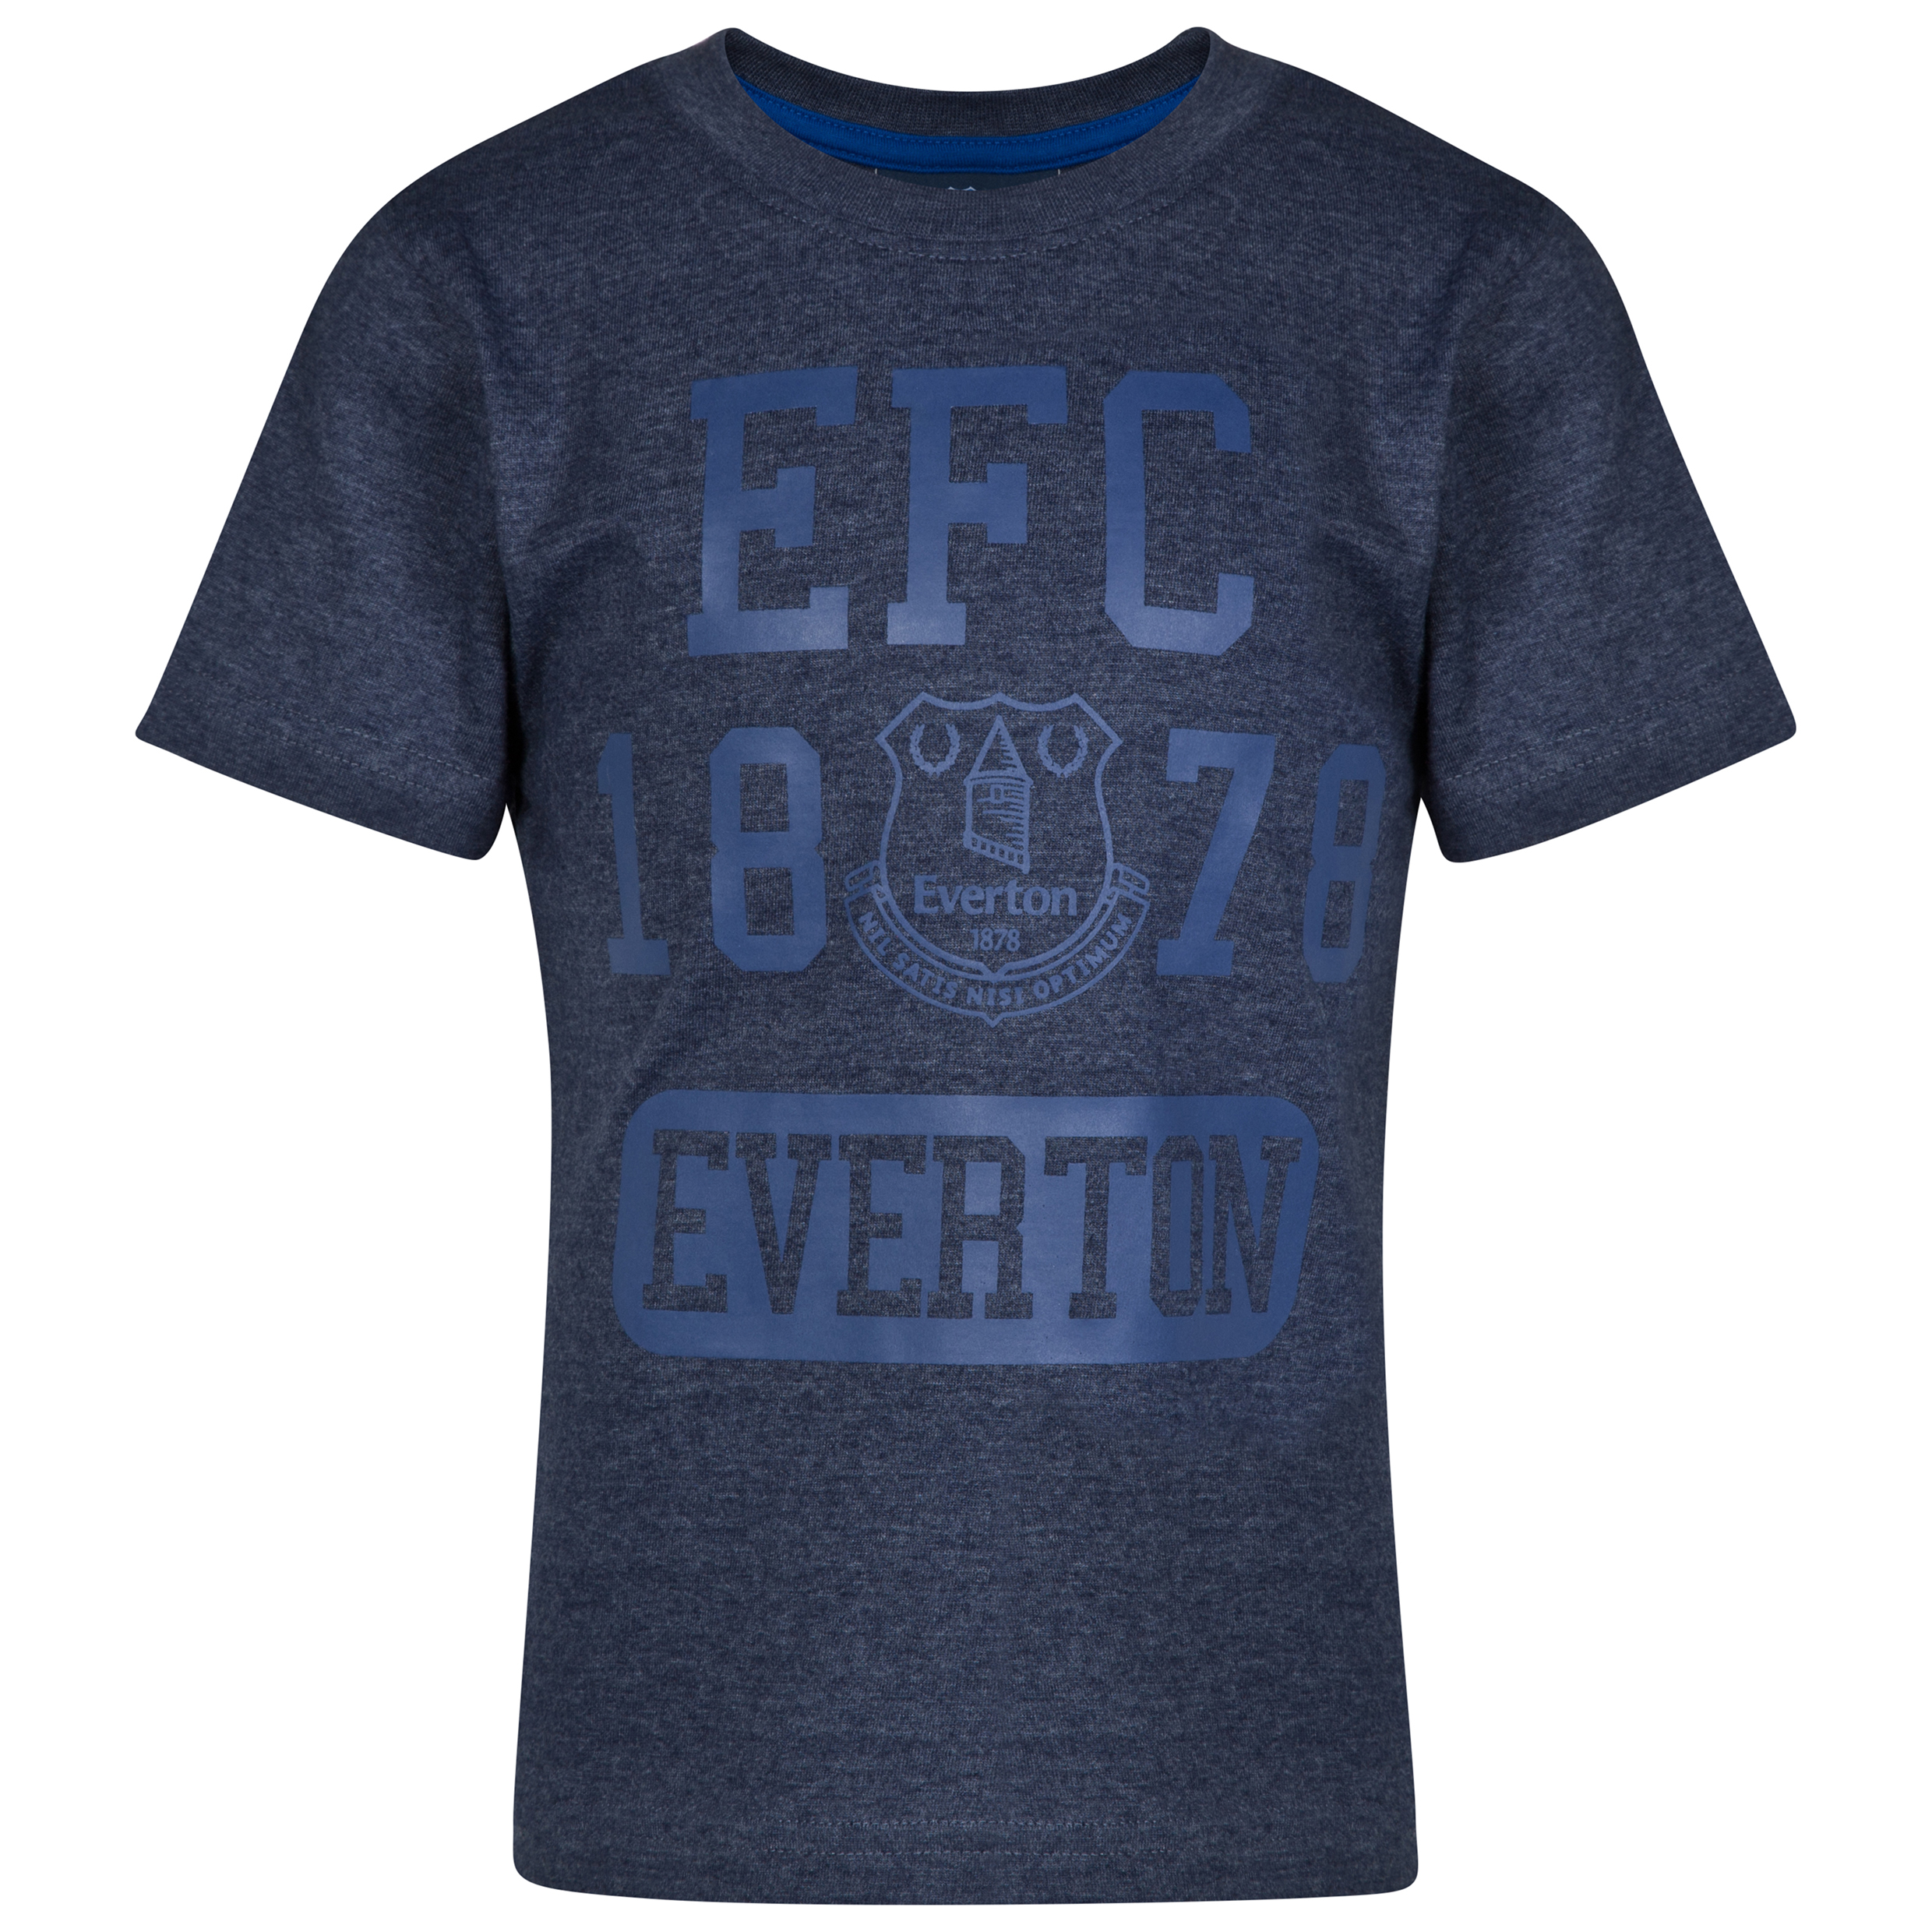 Everton Essential T-Shirt - Heather Navy - Older boys